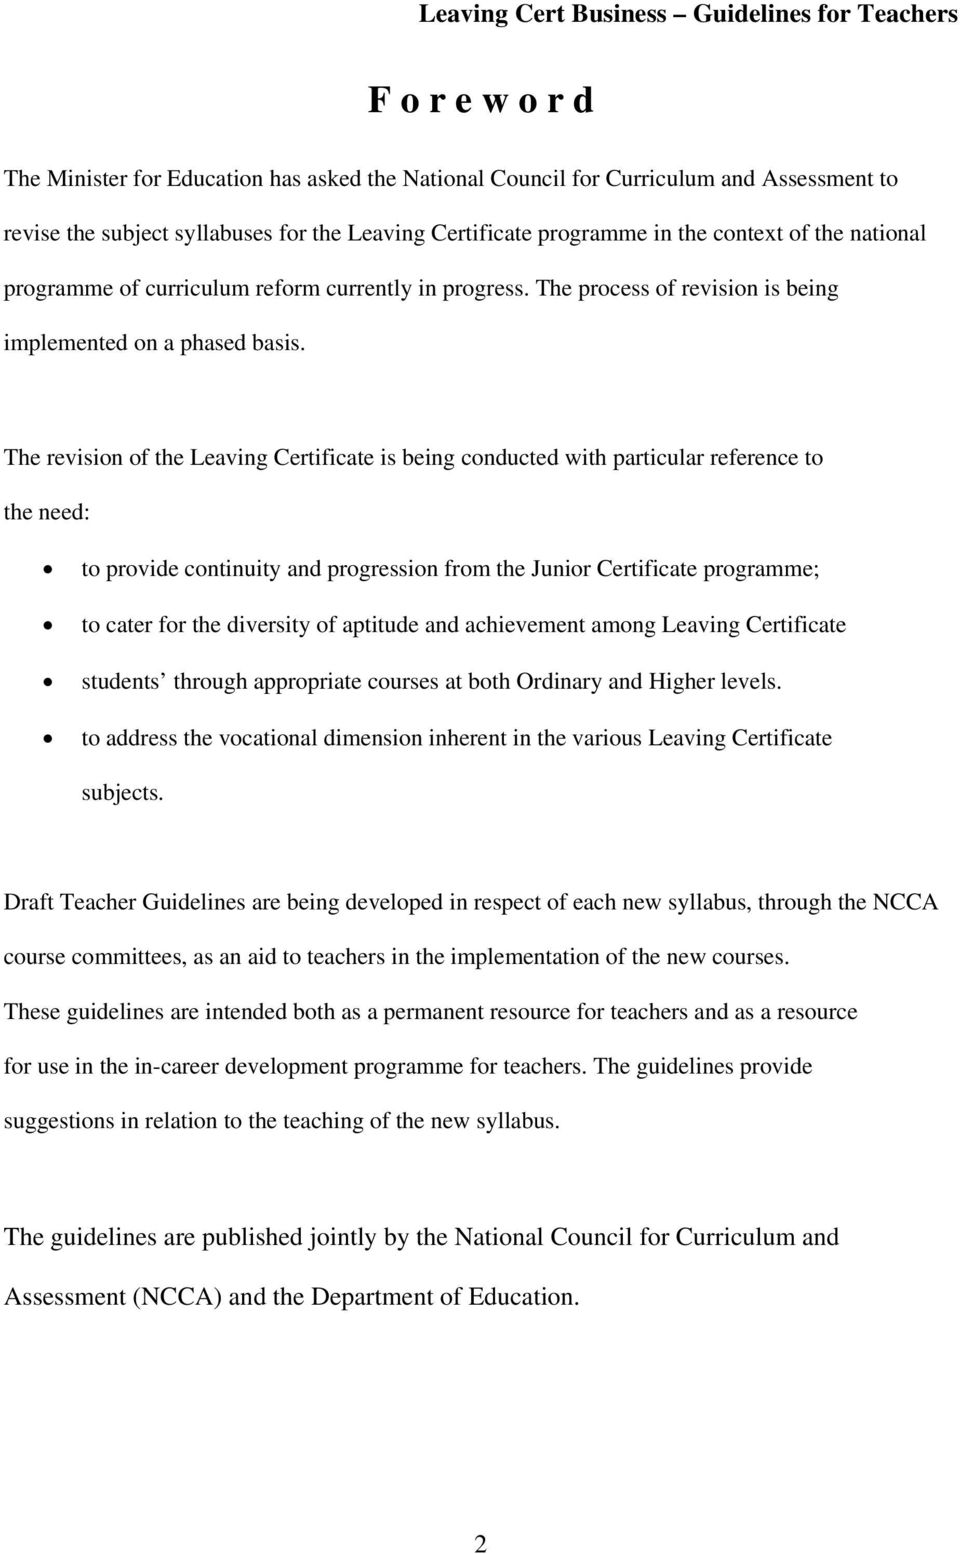 The revision of the Leaving Certificate is being conducted with particular reference to the need: to provide continuity and progression from the Junior Certificate programme; to cater for the